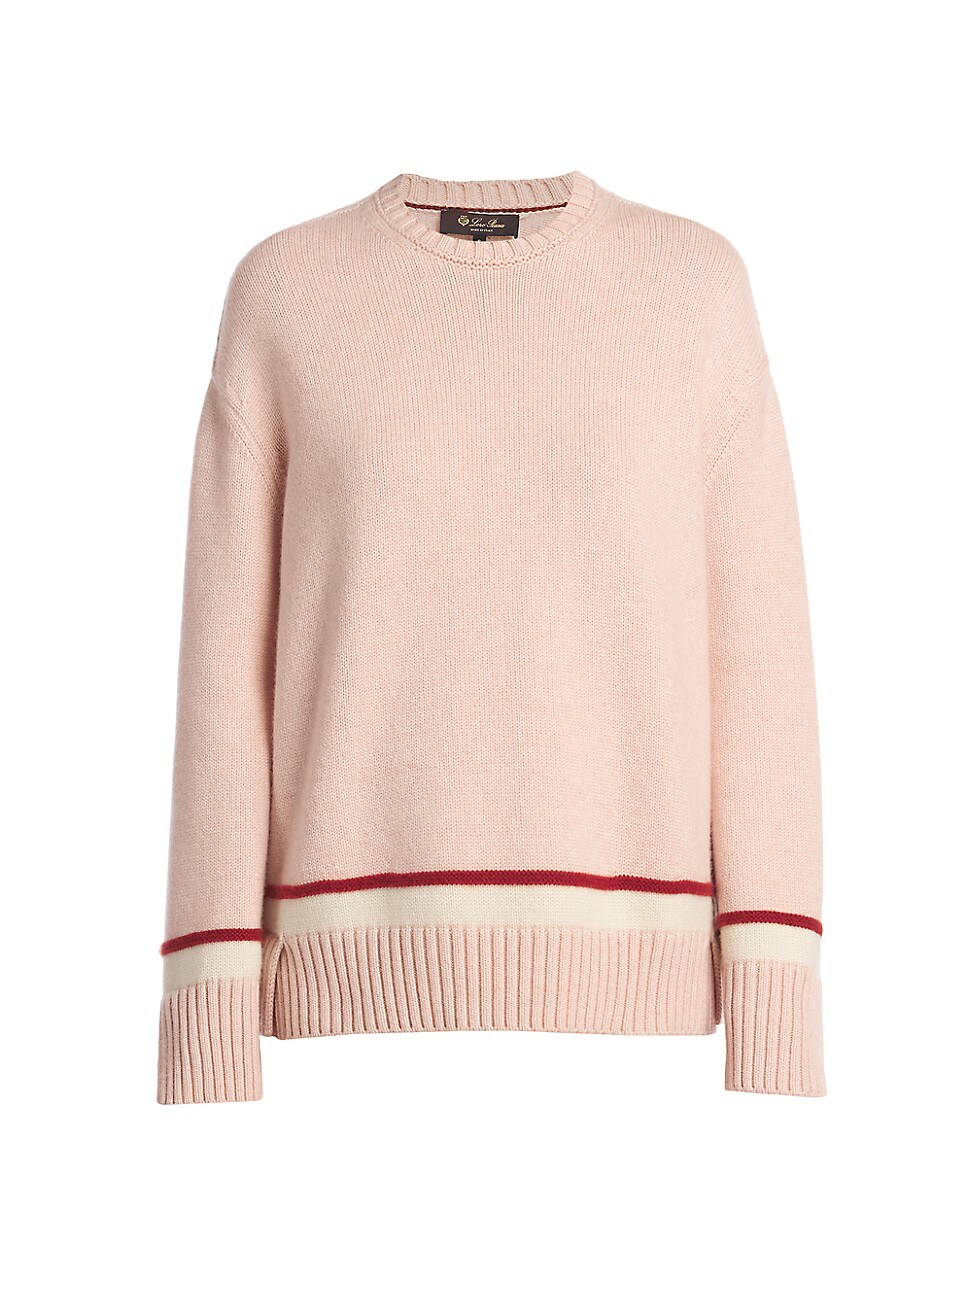 Loro Piana WOMEN'S CASHMERE CONTRAST-TRIM PULLOVER KNIT SWEATER